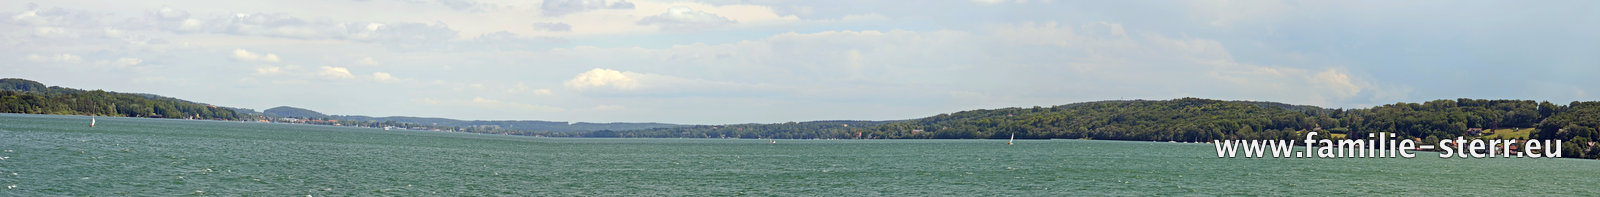 Panoramaaufnahme vom Starnberger See